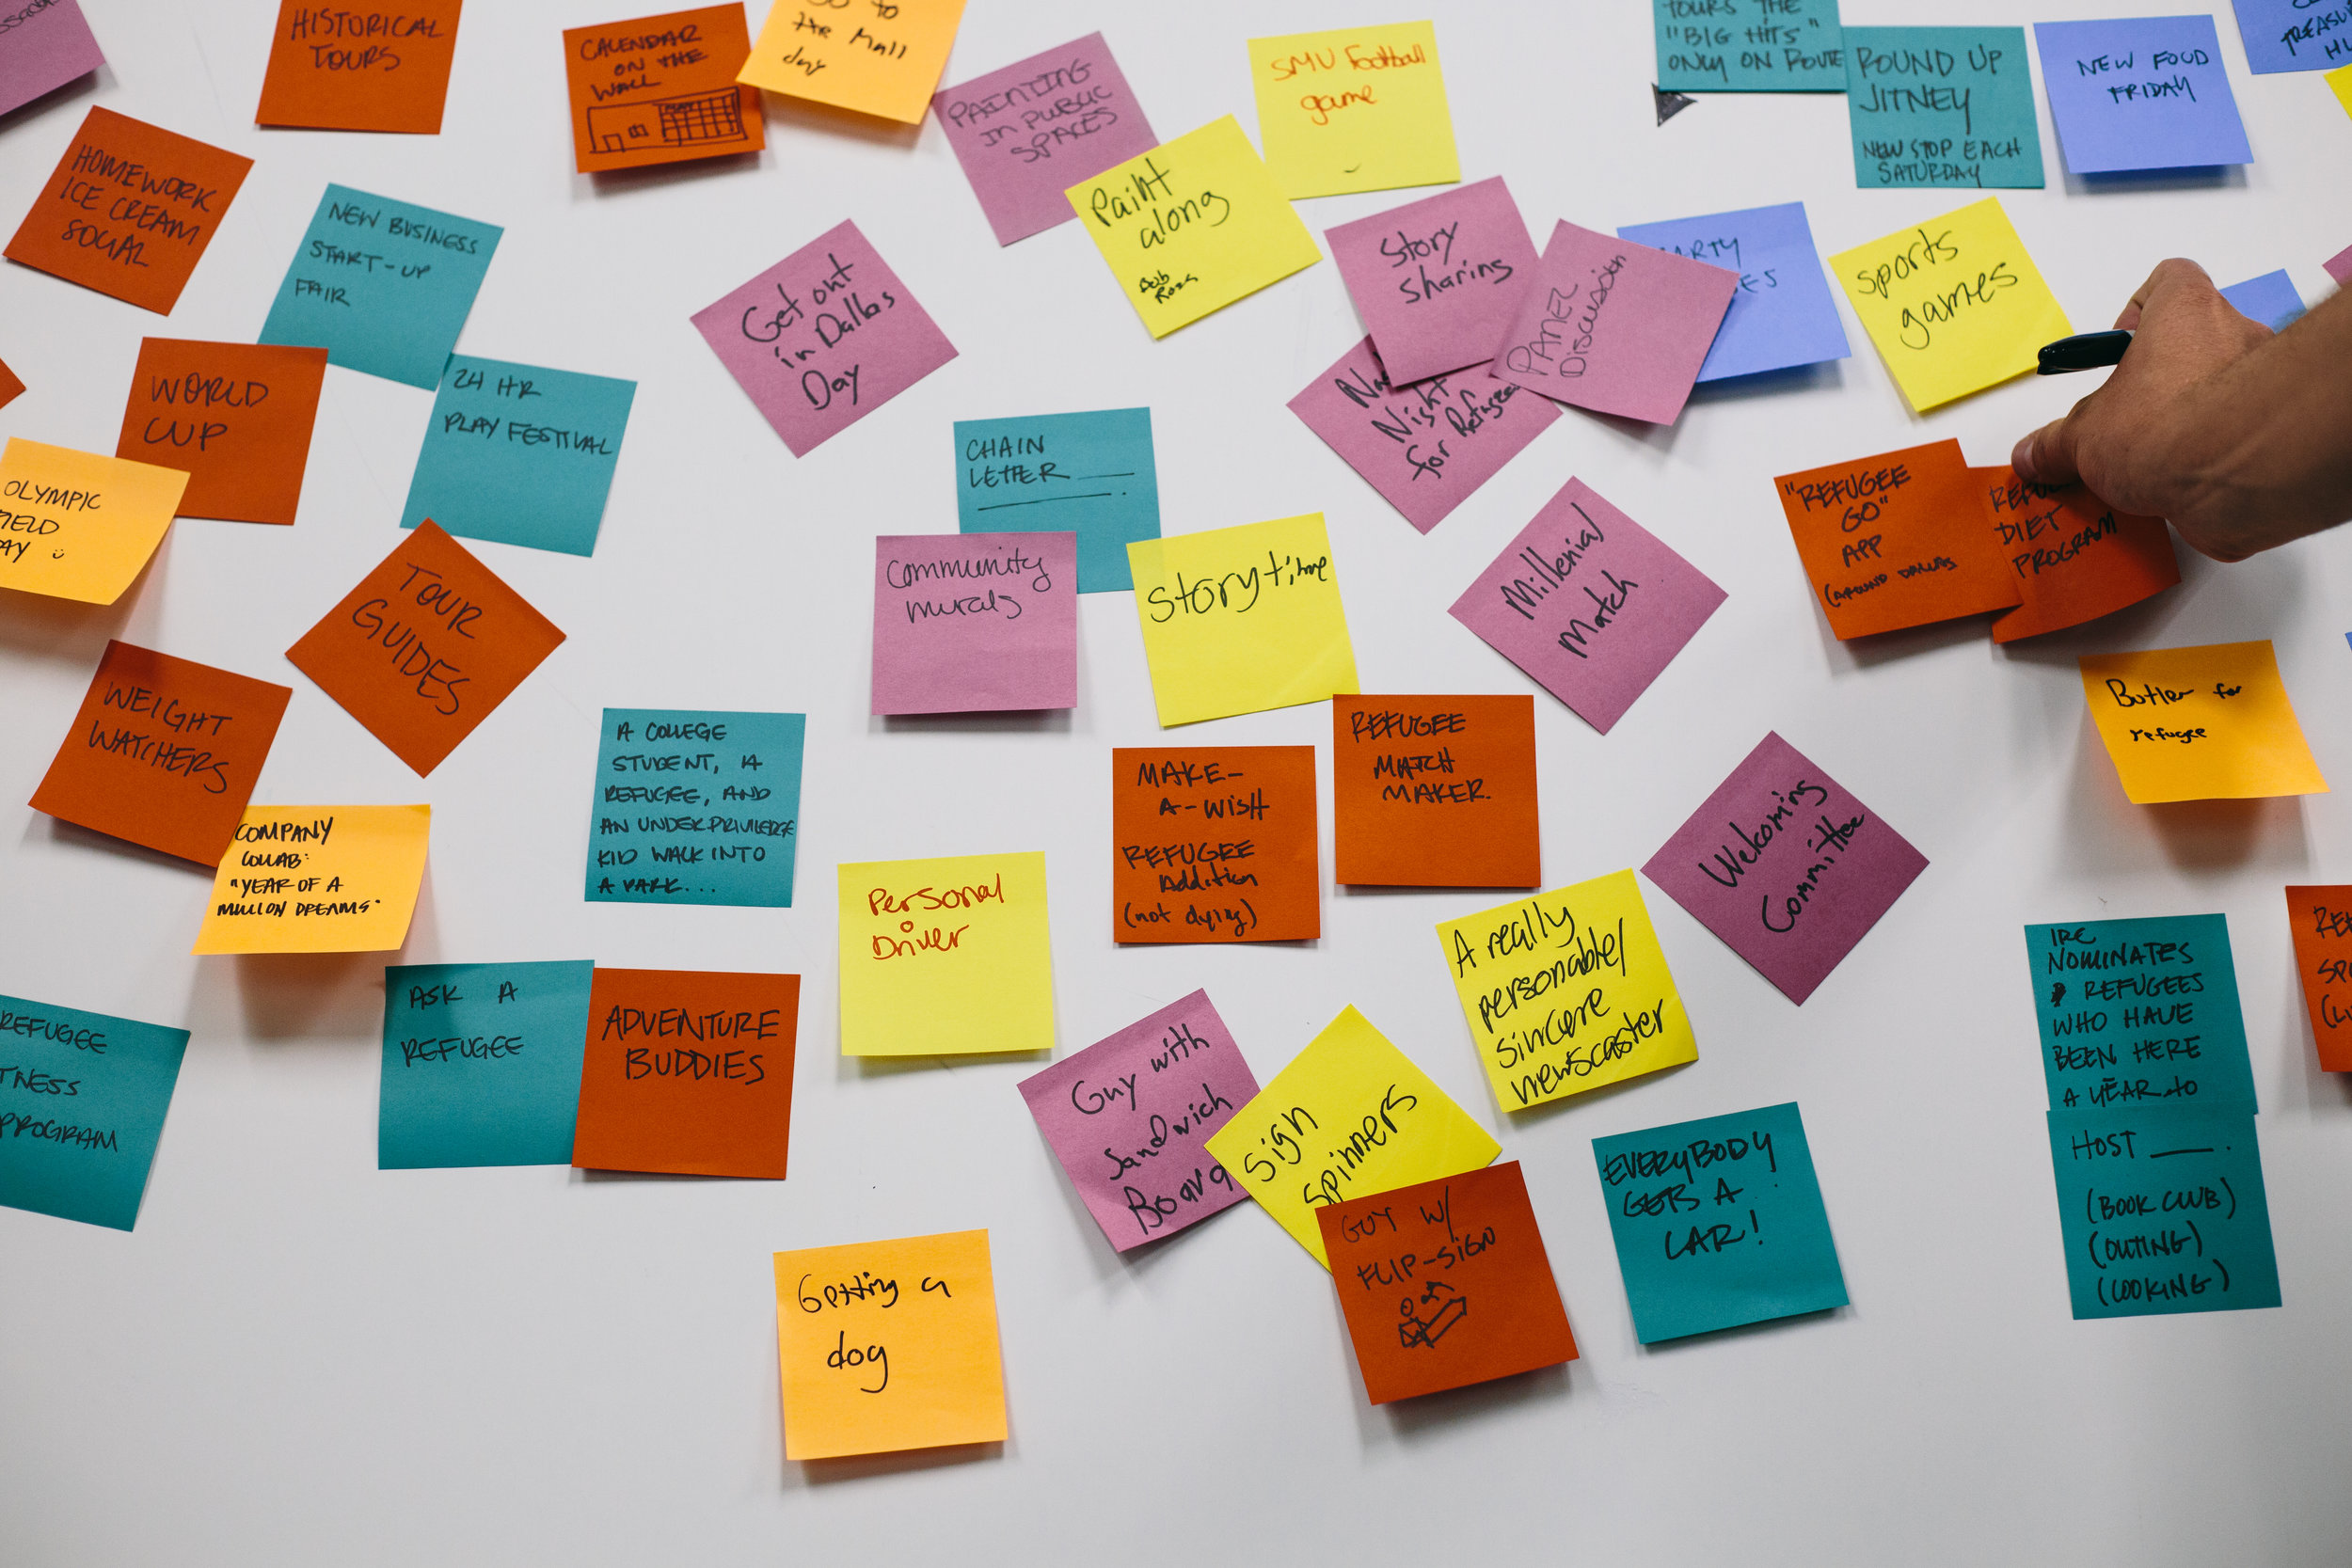 A glimpse into the ideation process that begins a cycle of quickfire prototyping, reflection, and synthesis that leads to the development of a rich and deeply impactful solution.